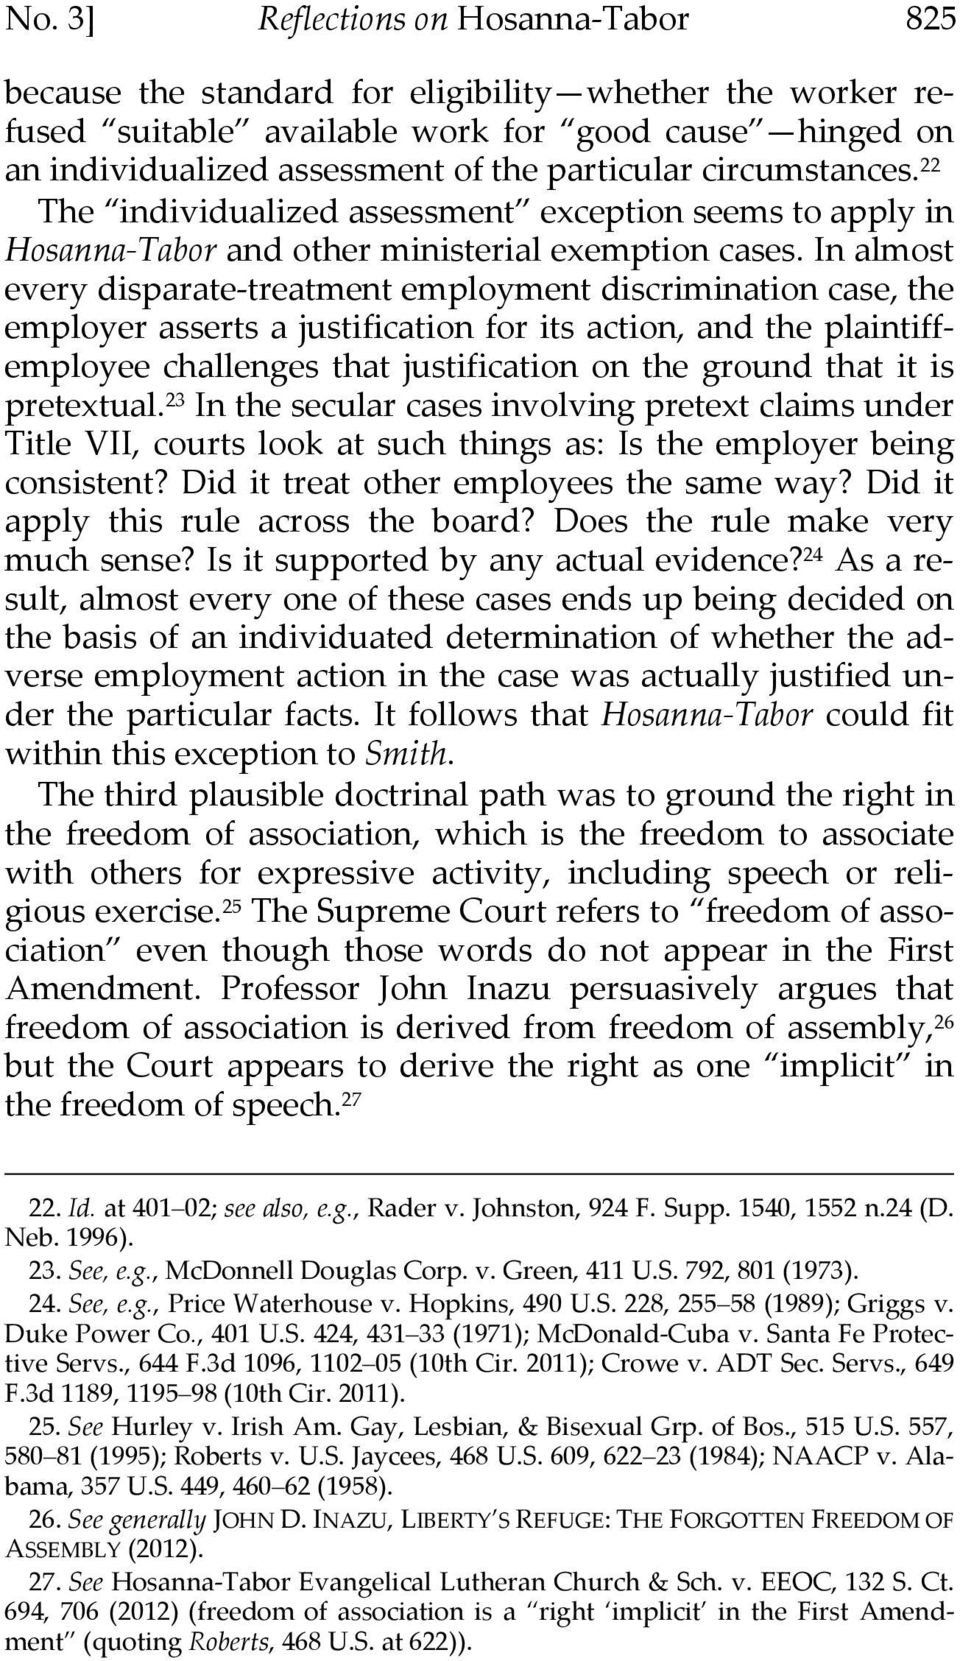 In almost every disparate treatment employment discrimination case, the employer asserts a justification for its action, and the plaintiffemployee challenges that justification on the ground that it